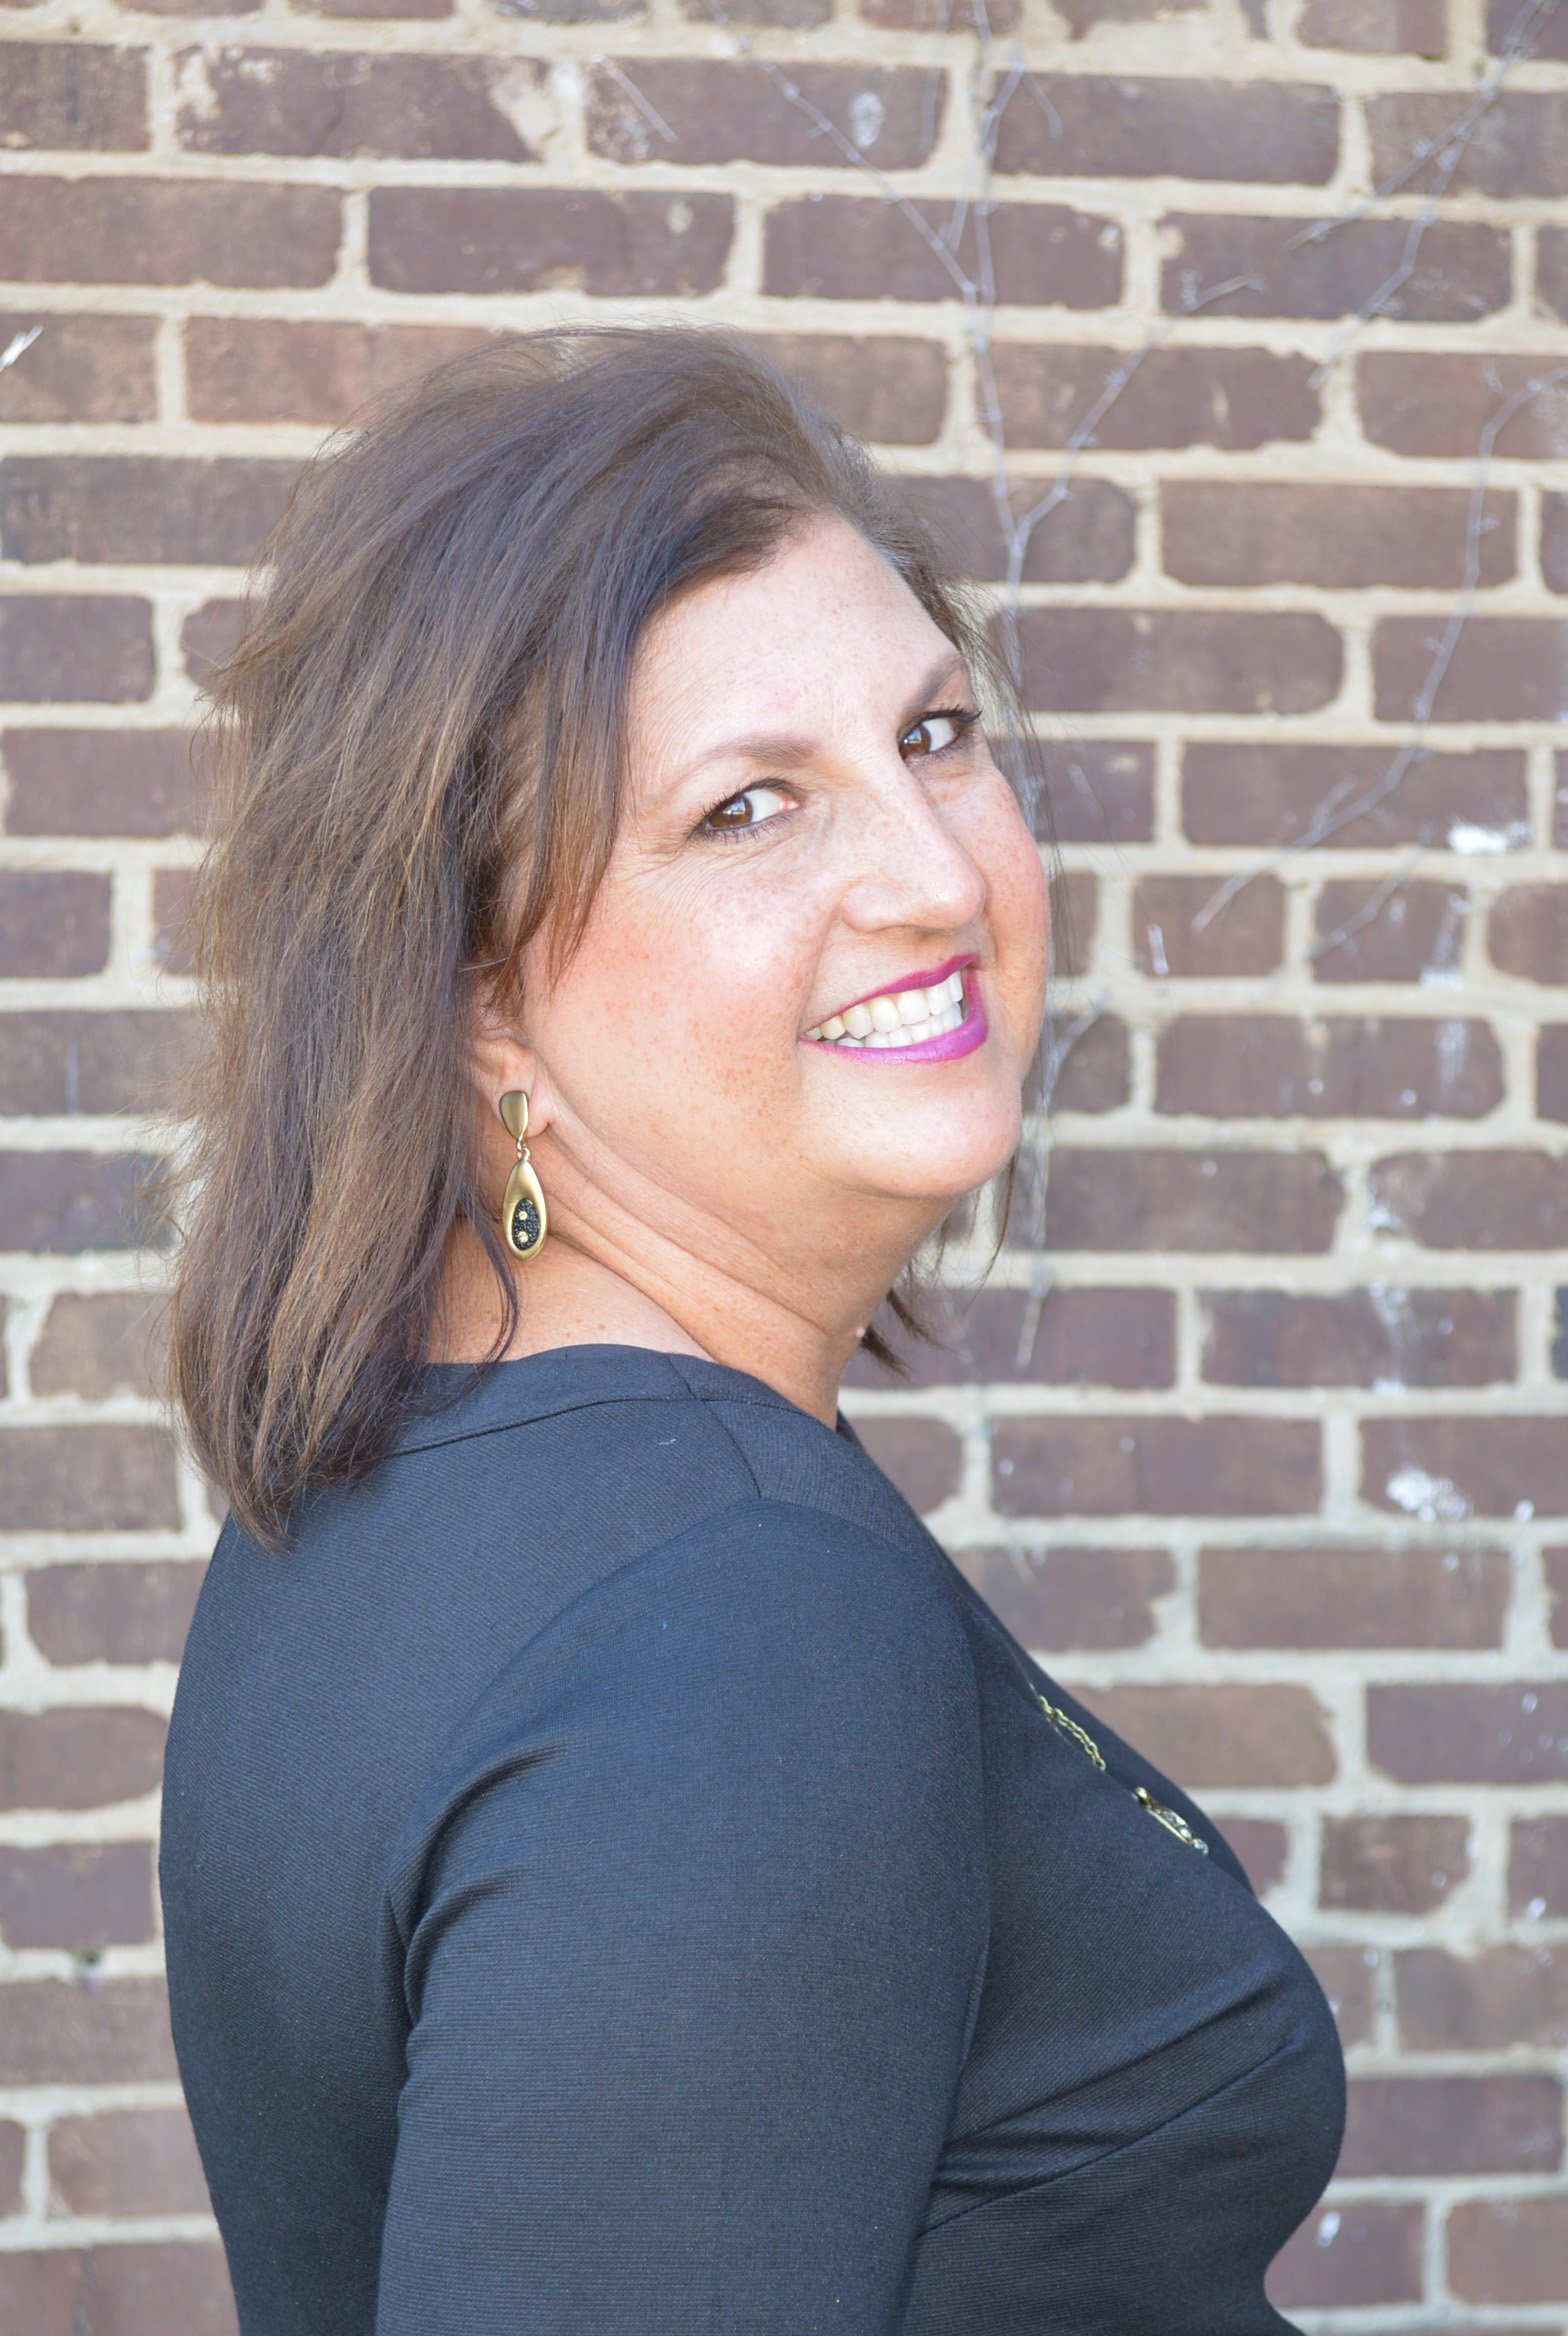 Leisa, a dental assistant at Moore Dental in Sweetwater, Tennessee